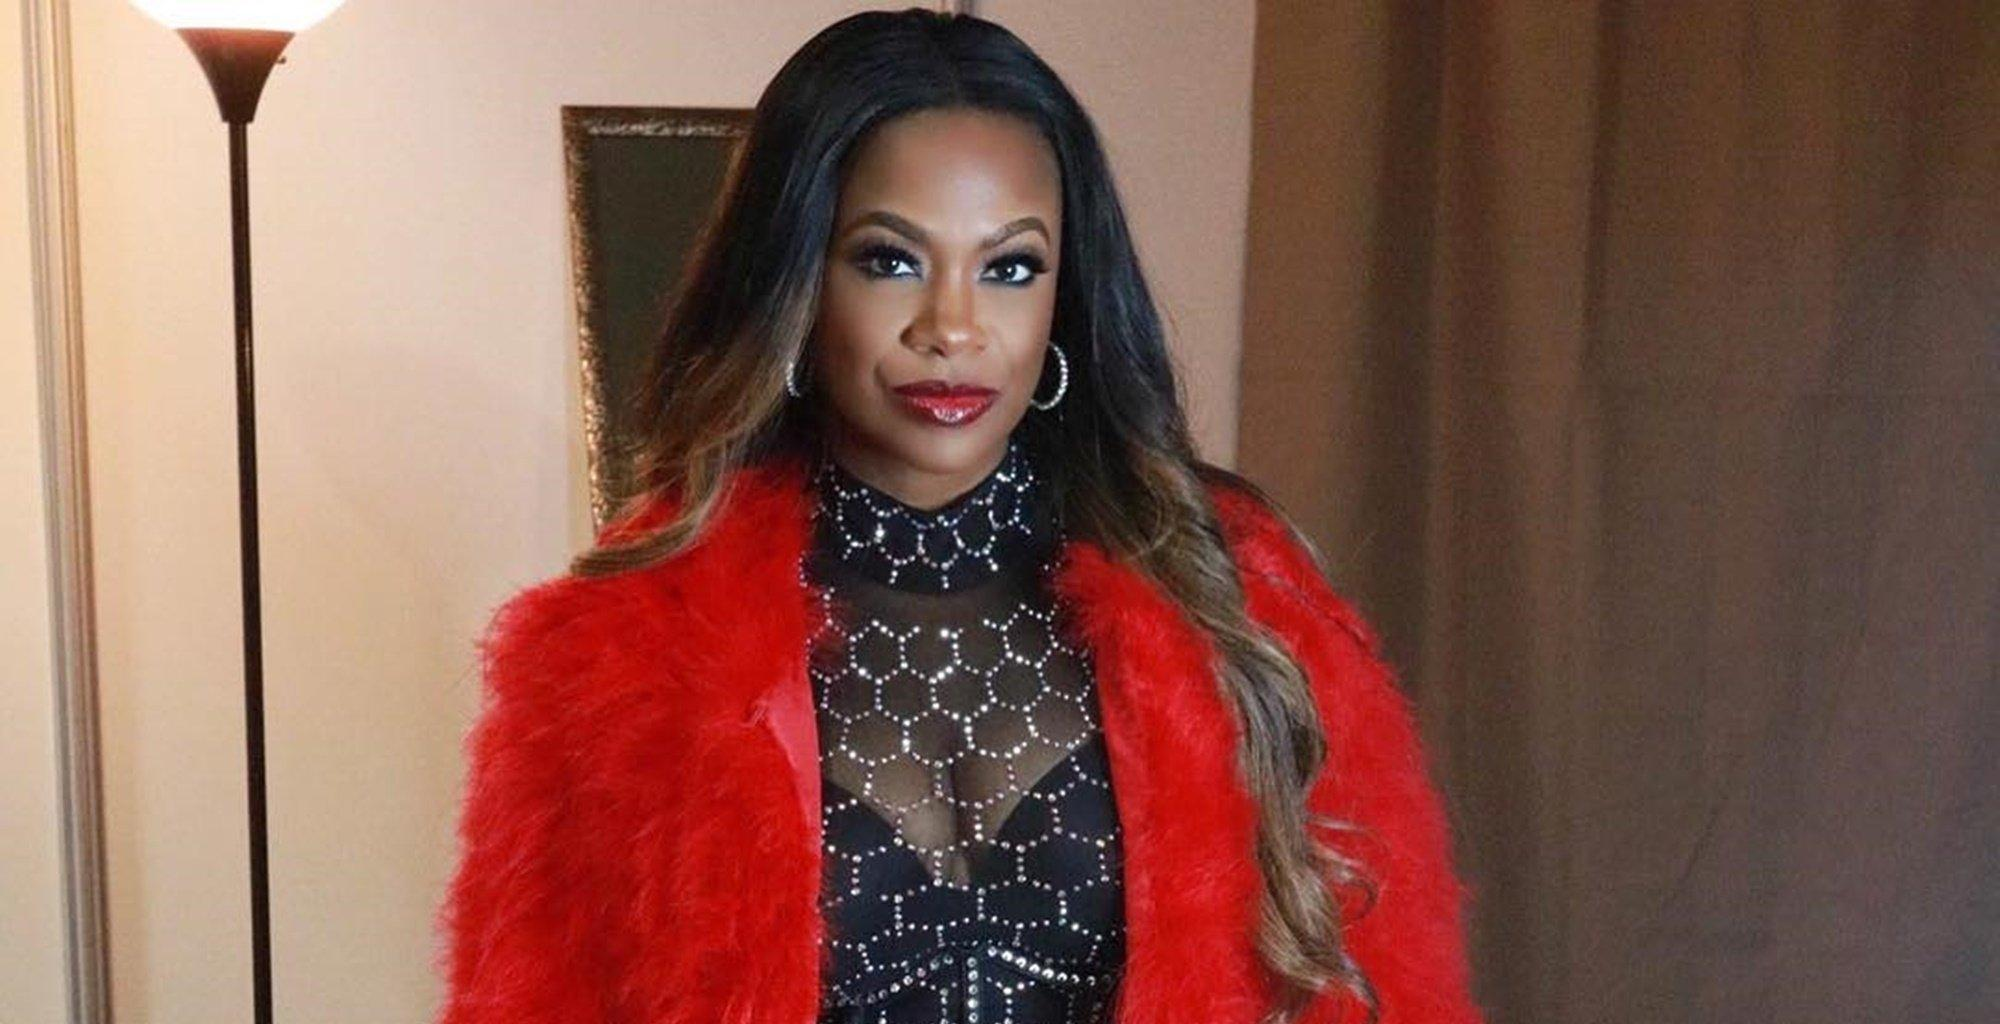 Kandi Burruss Hangs Out With Her Favourite Guys - See Her Photo And Their Elegant Outfits